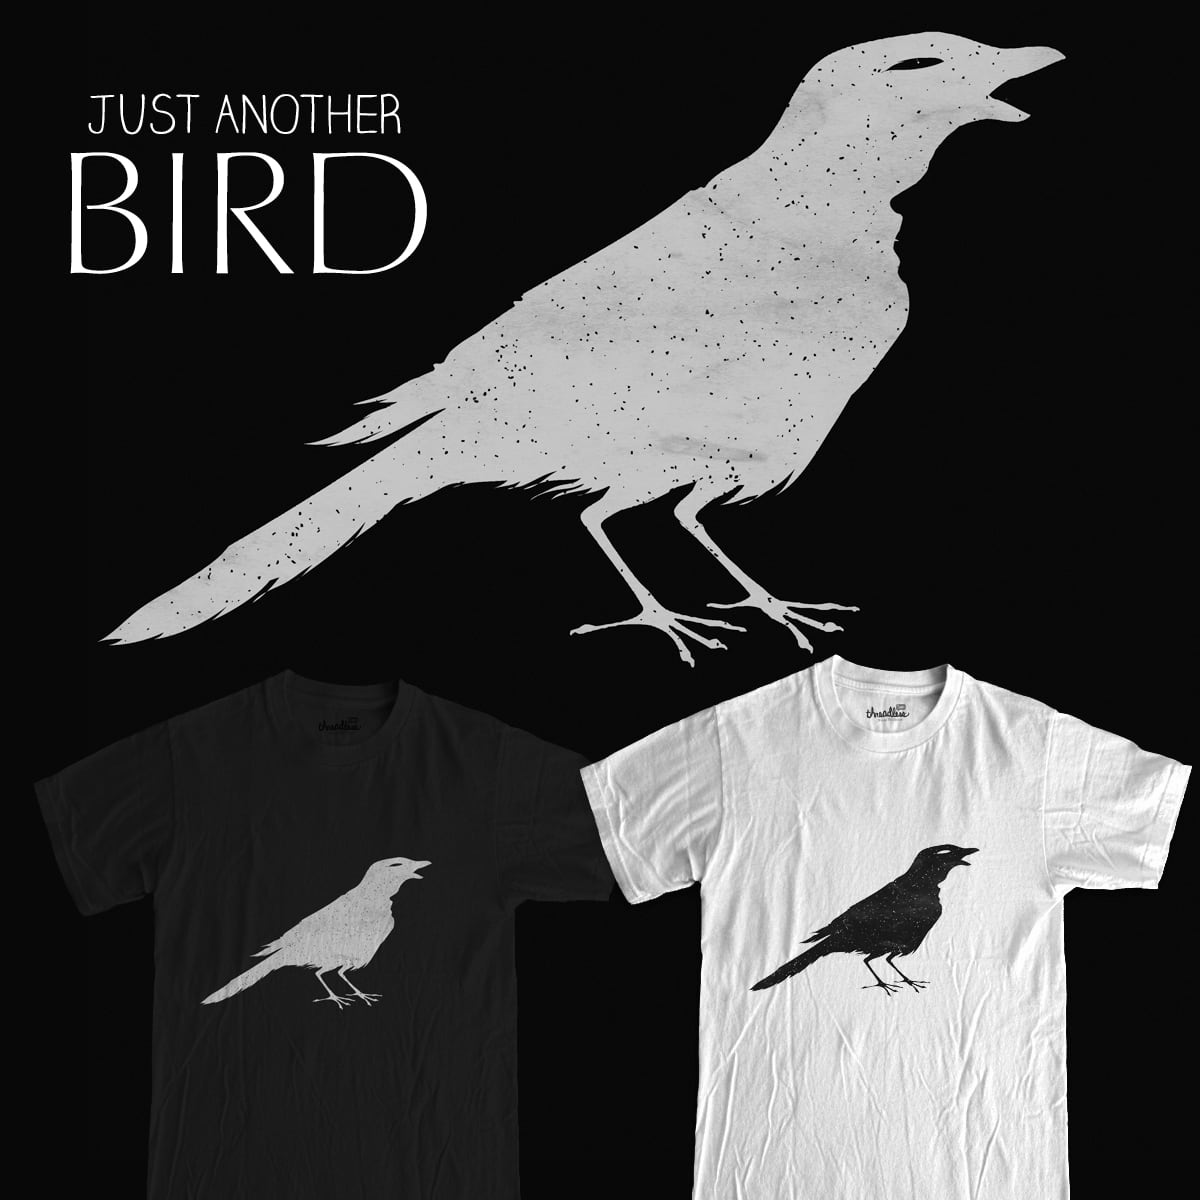 Just Another Bird by RL76 on Threadless